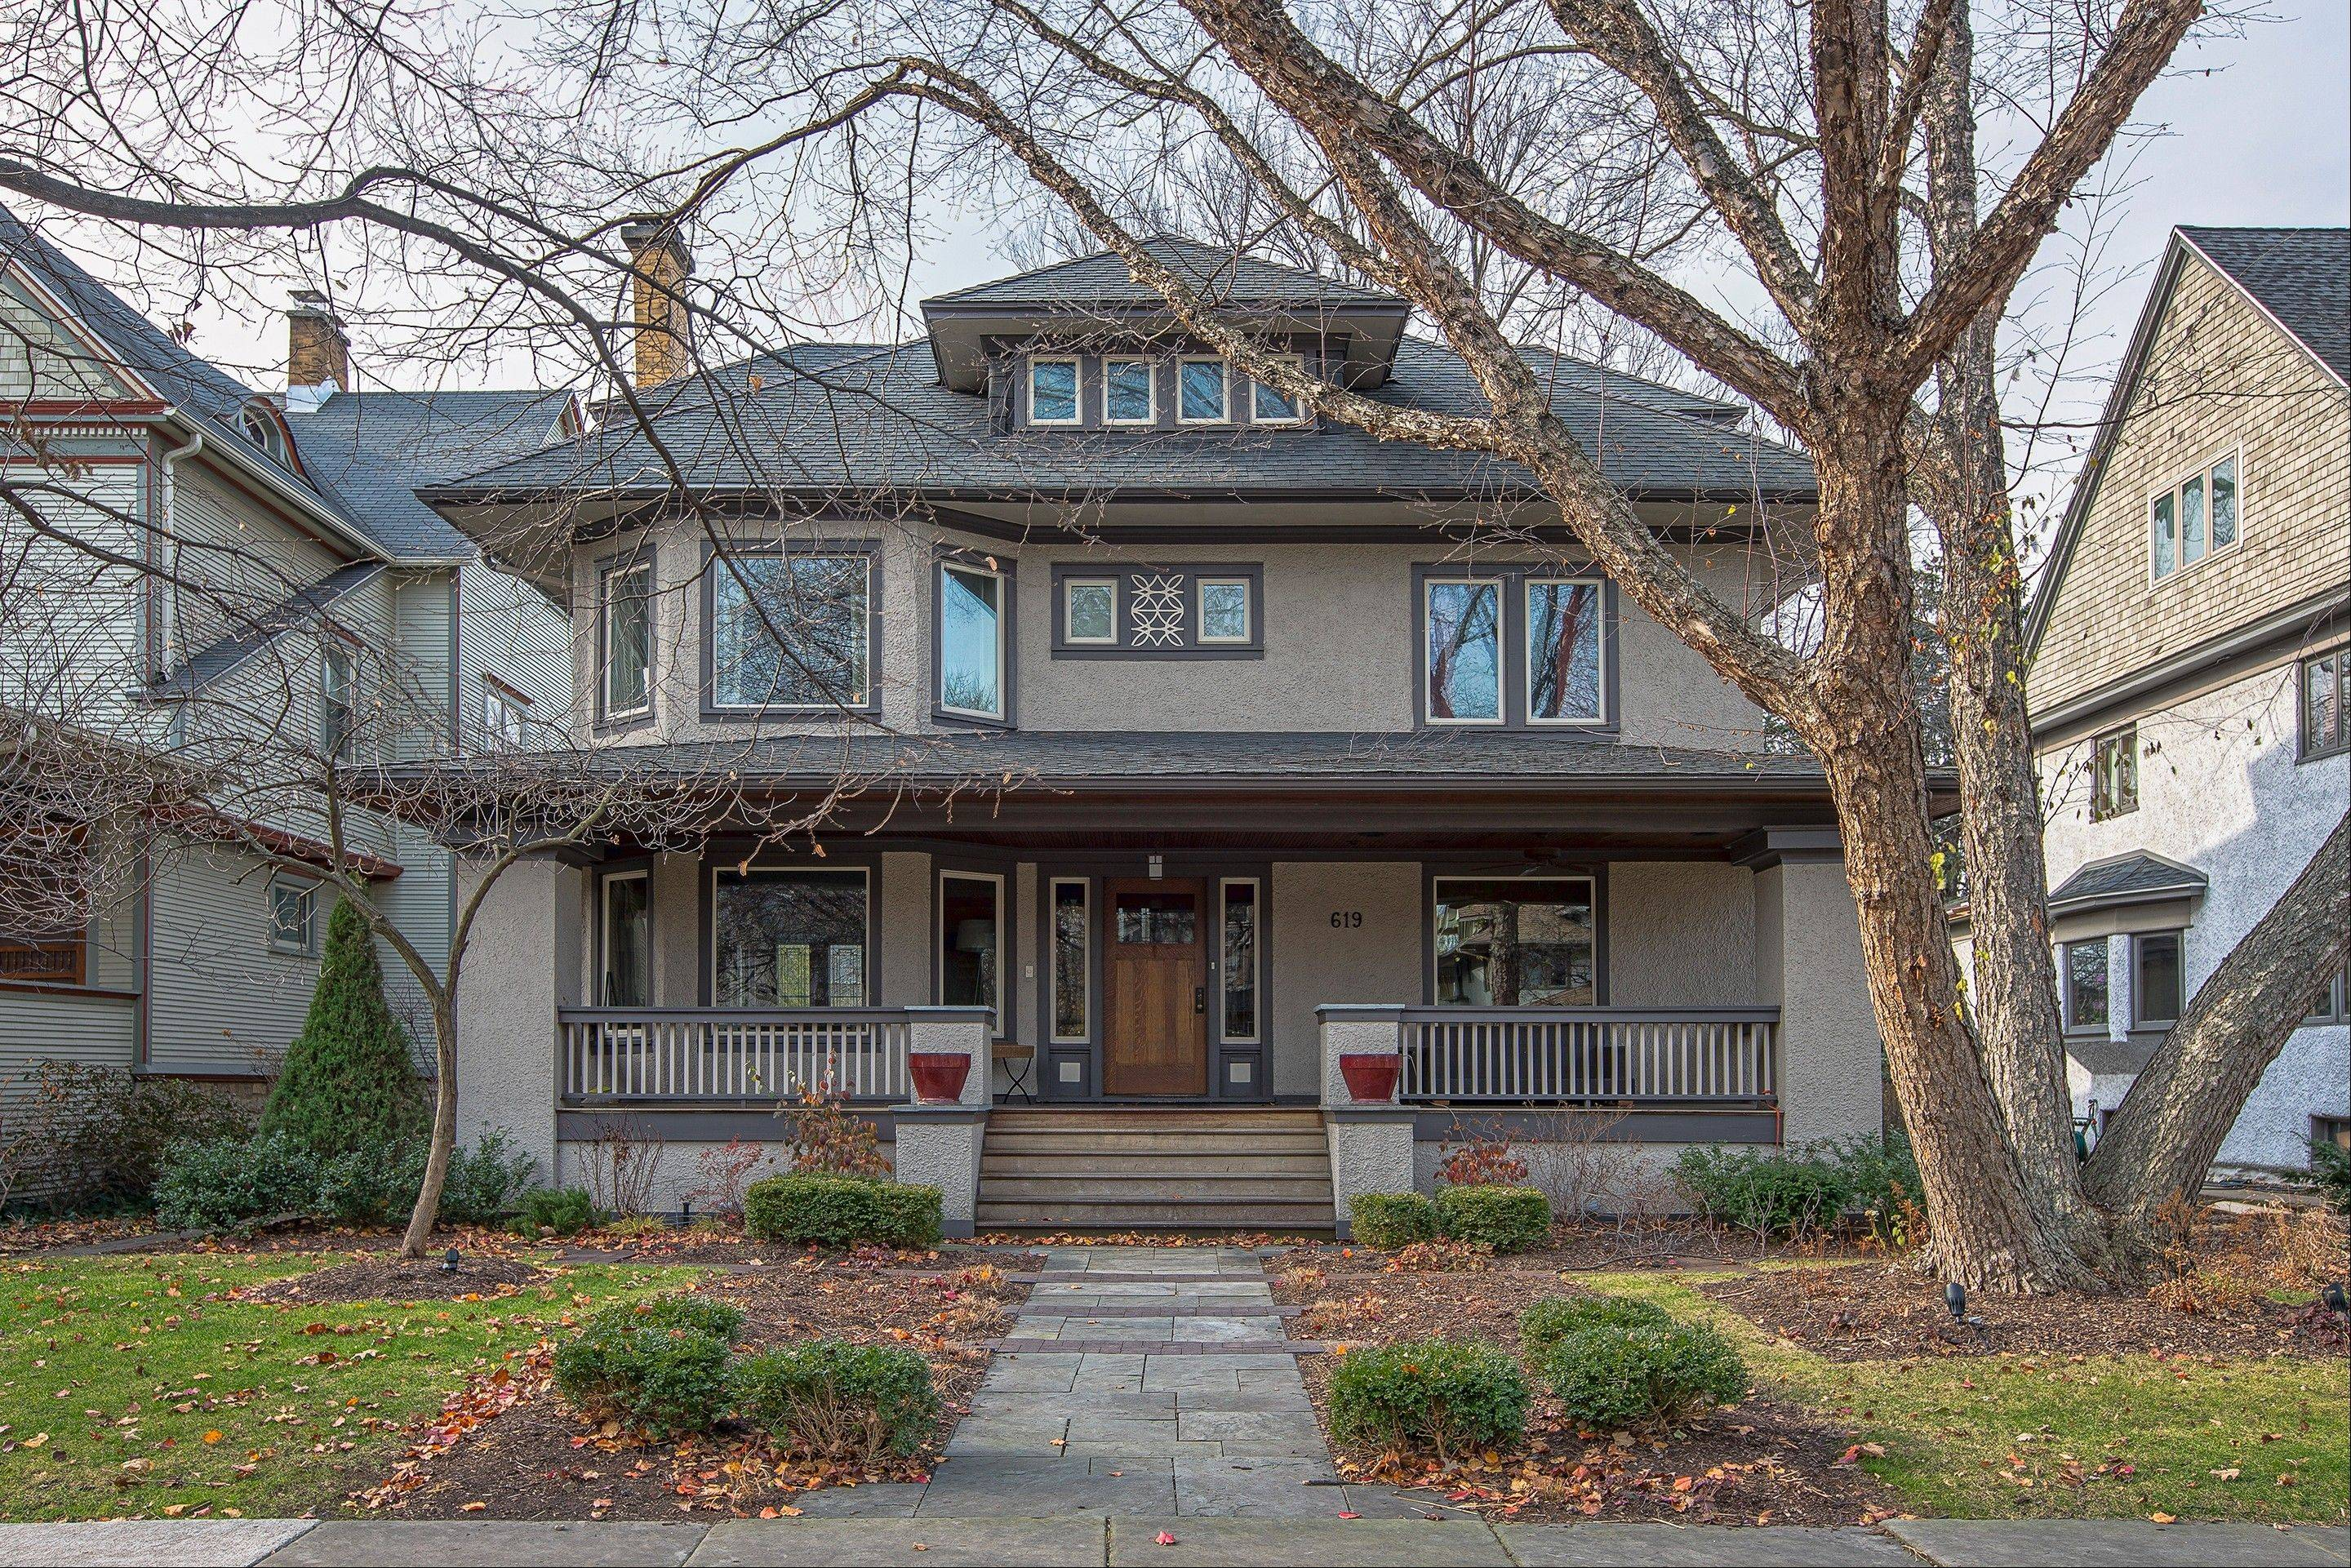 The Frank Keefer house (1906) is a Prairie-style house by architect E.E. Roberts.